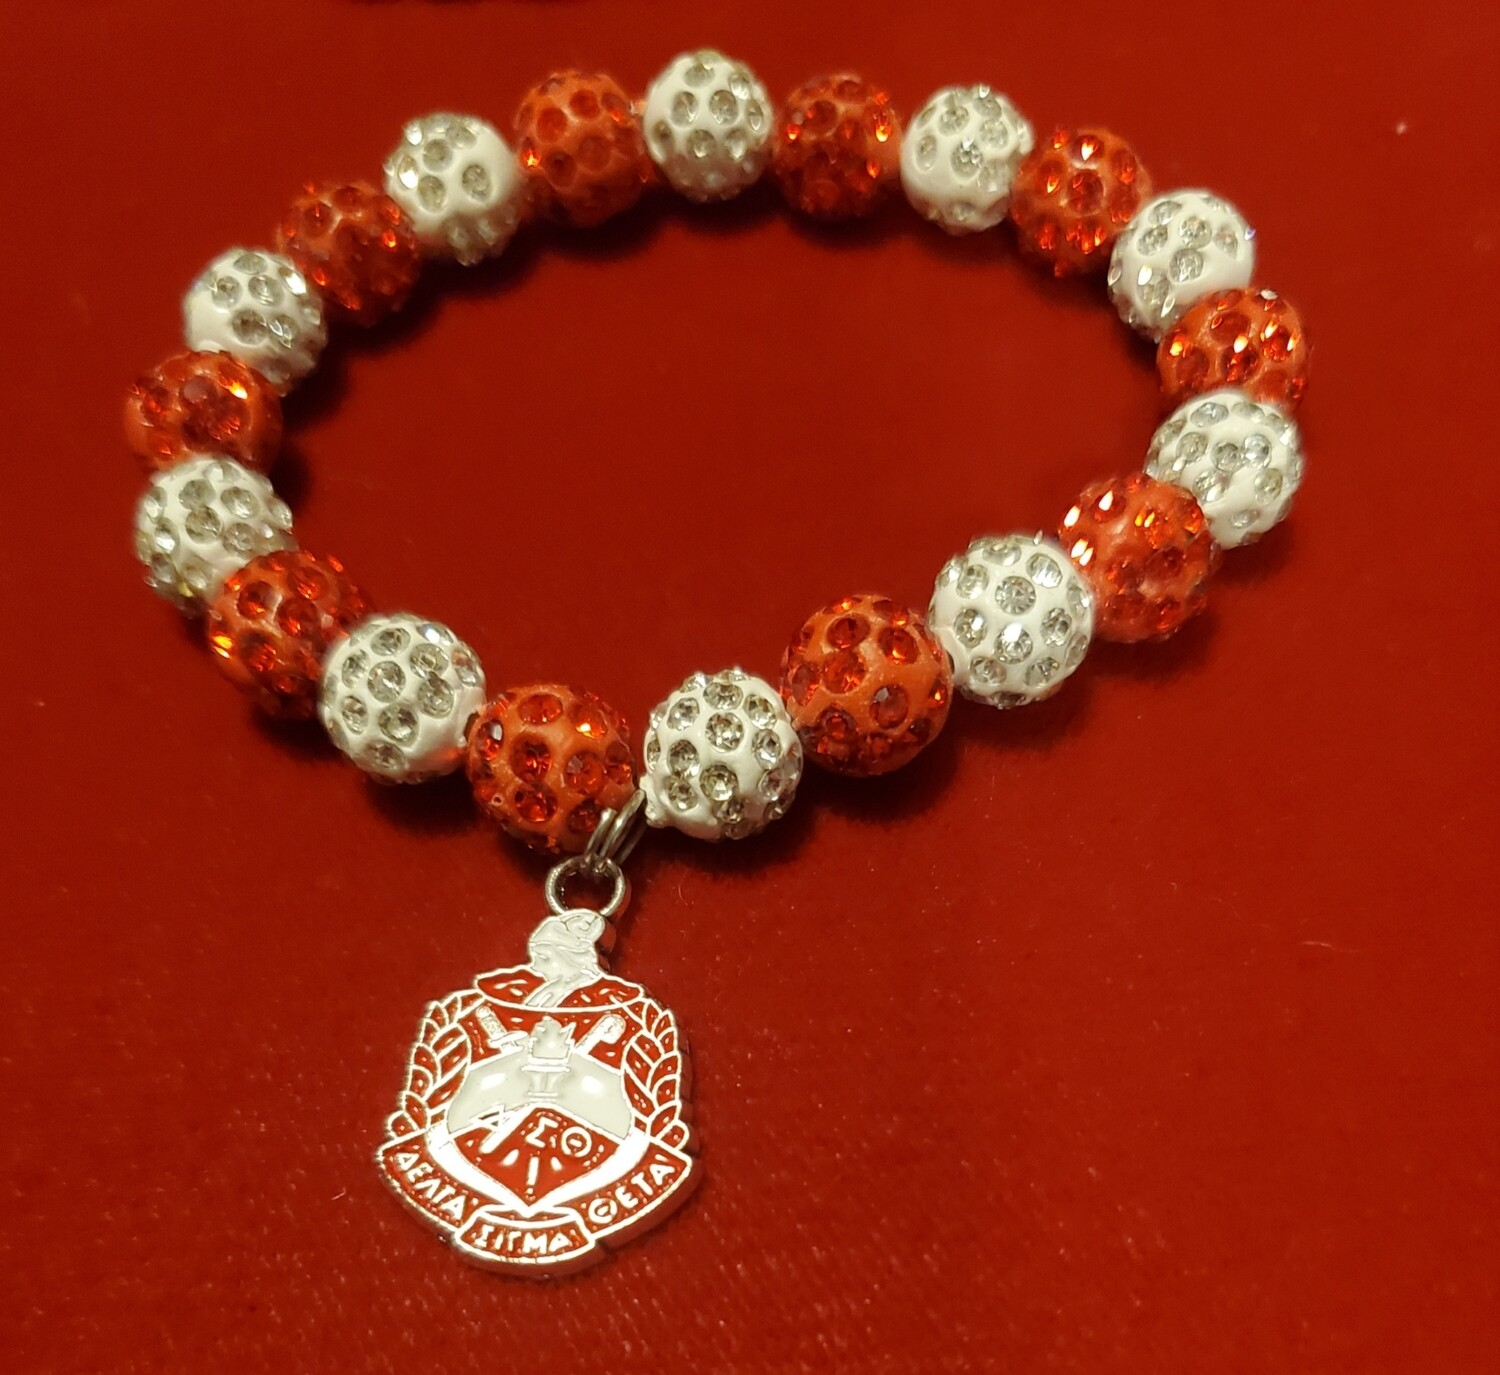 DST Bling Bead Bracelet with Shield Charm